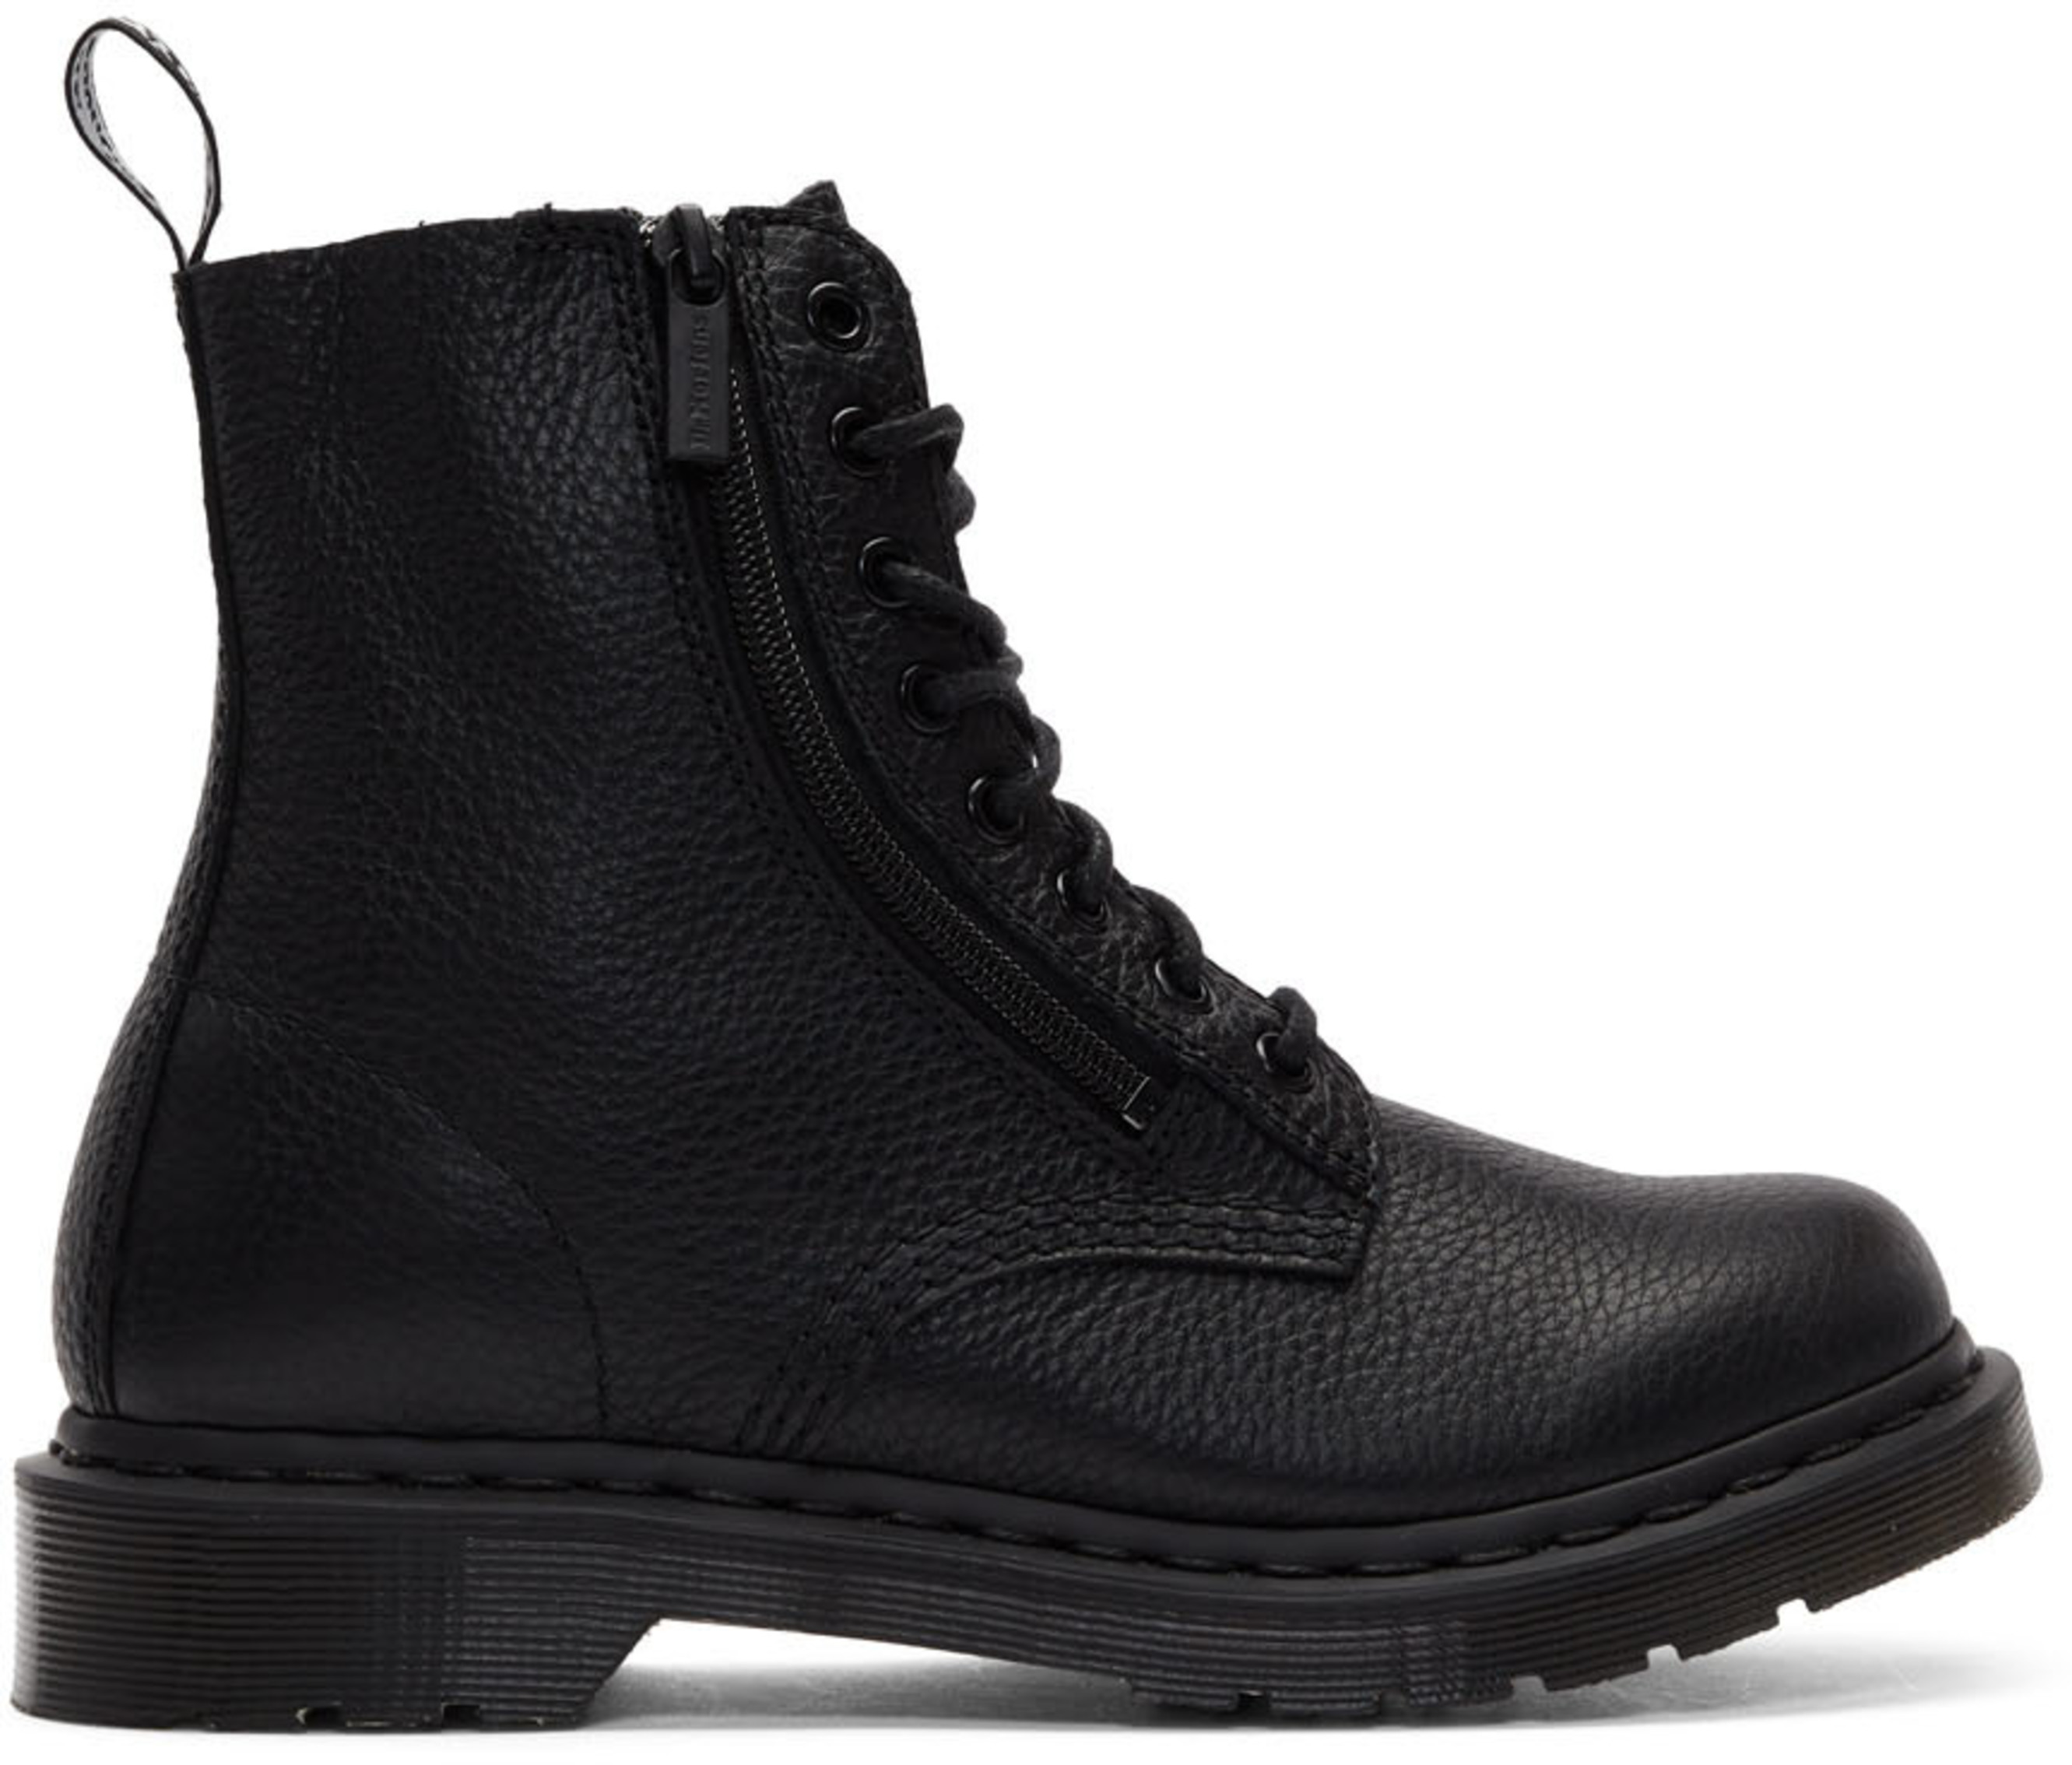 factory outlet incredible prices exquisite style dr martens leonore sort